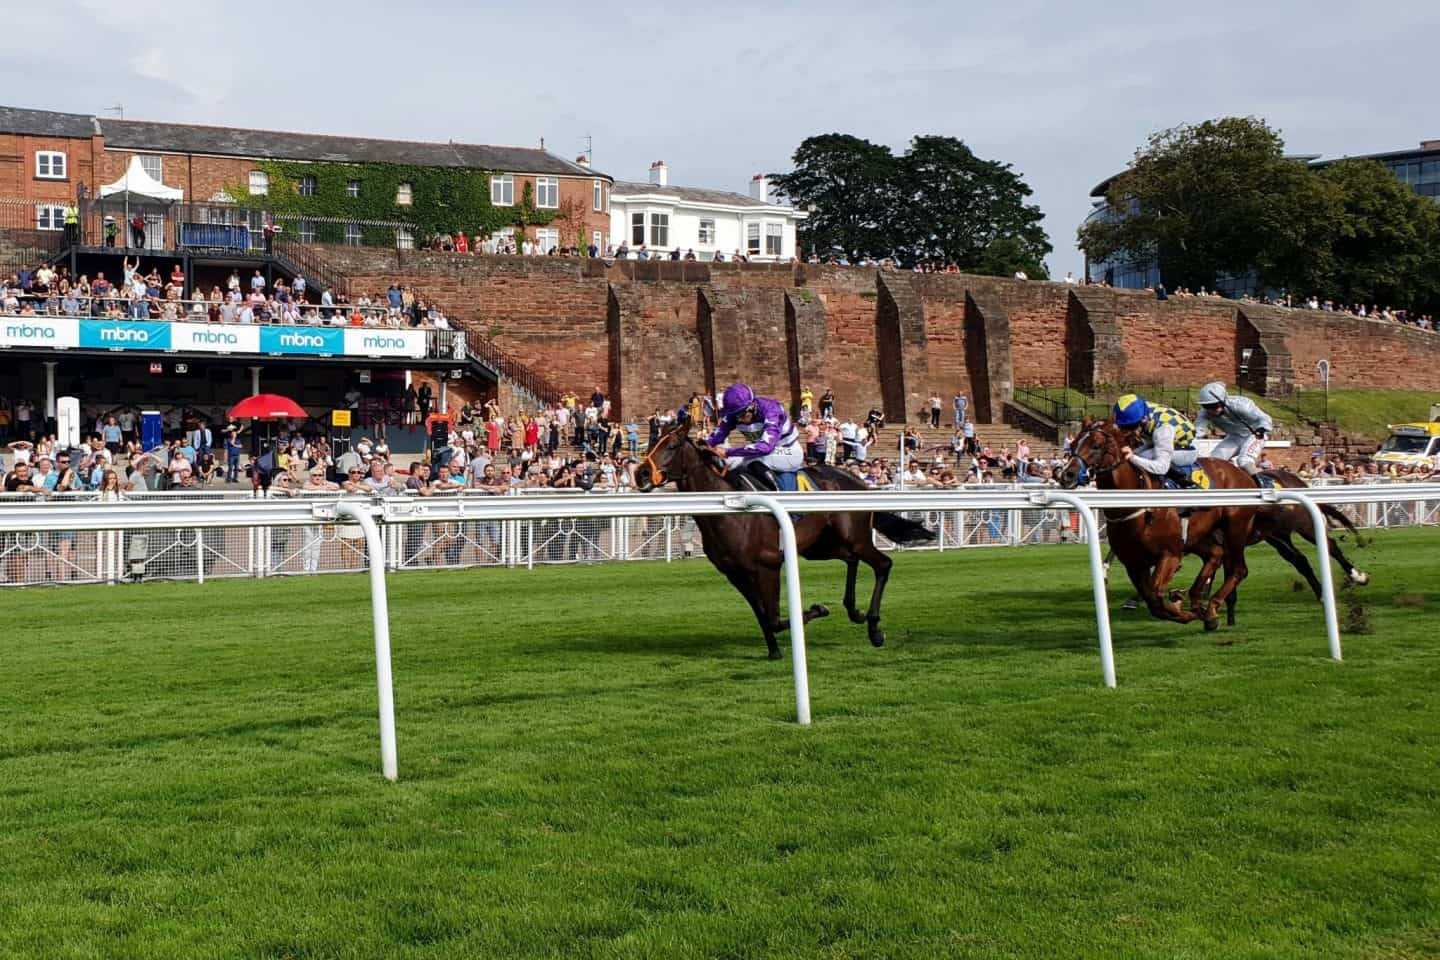 Horse racing at Chester Racecourse